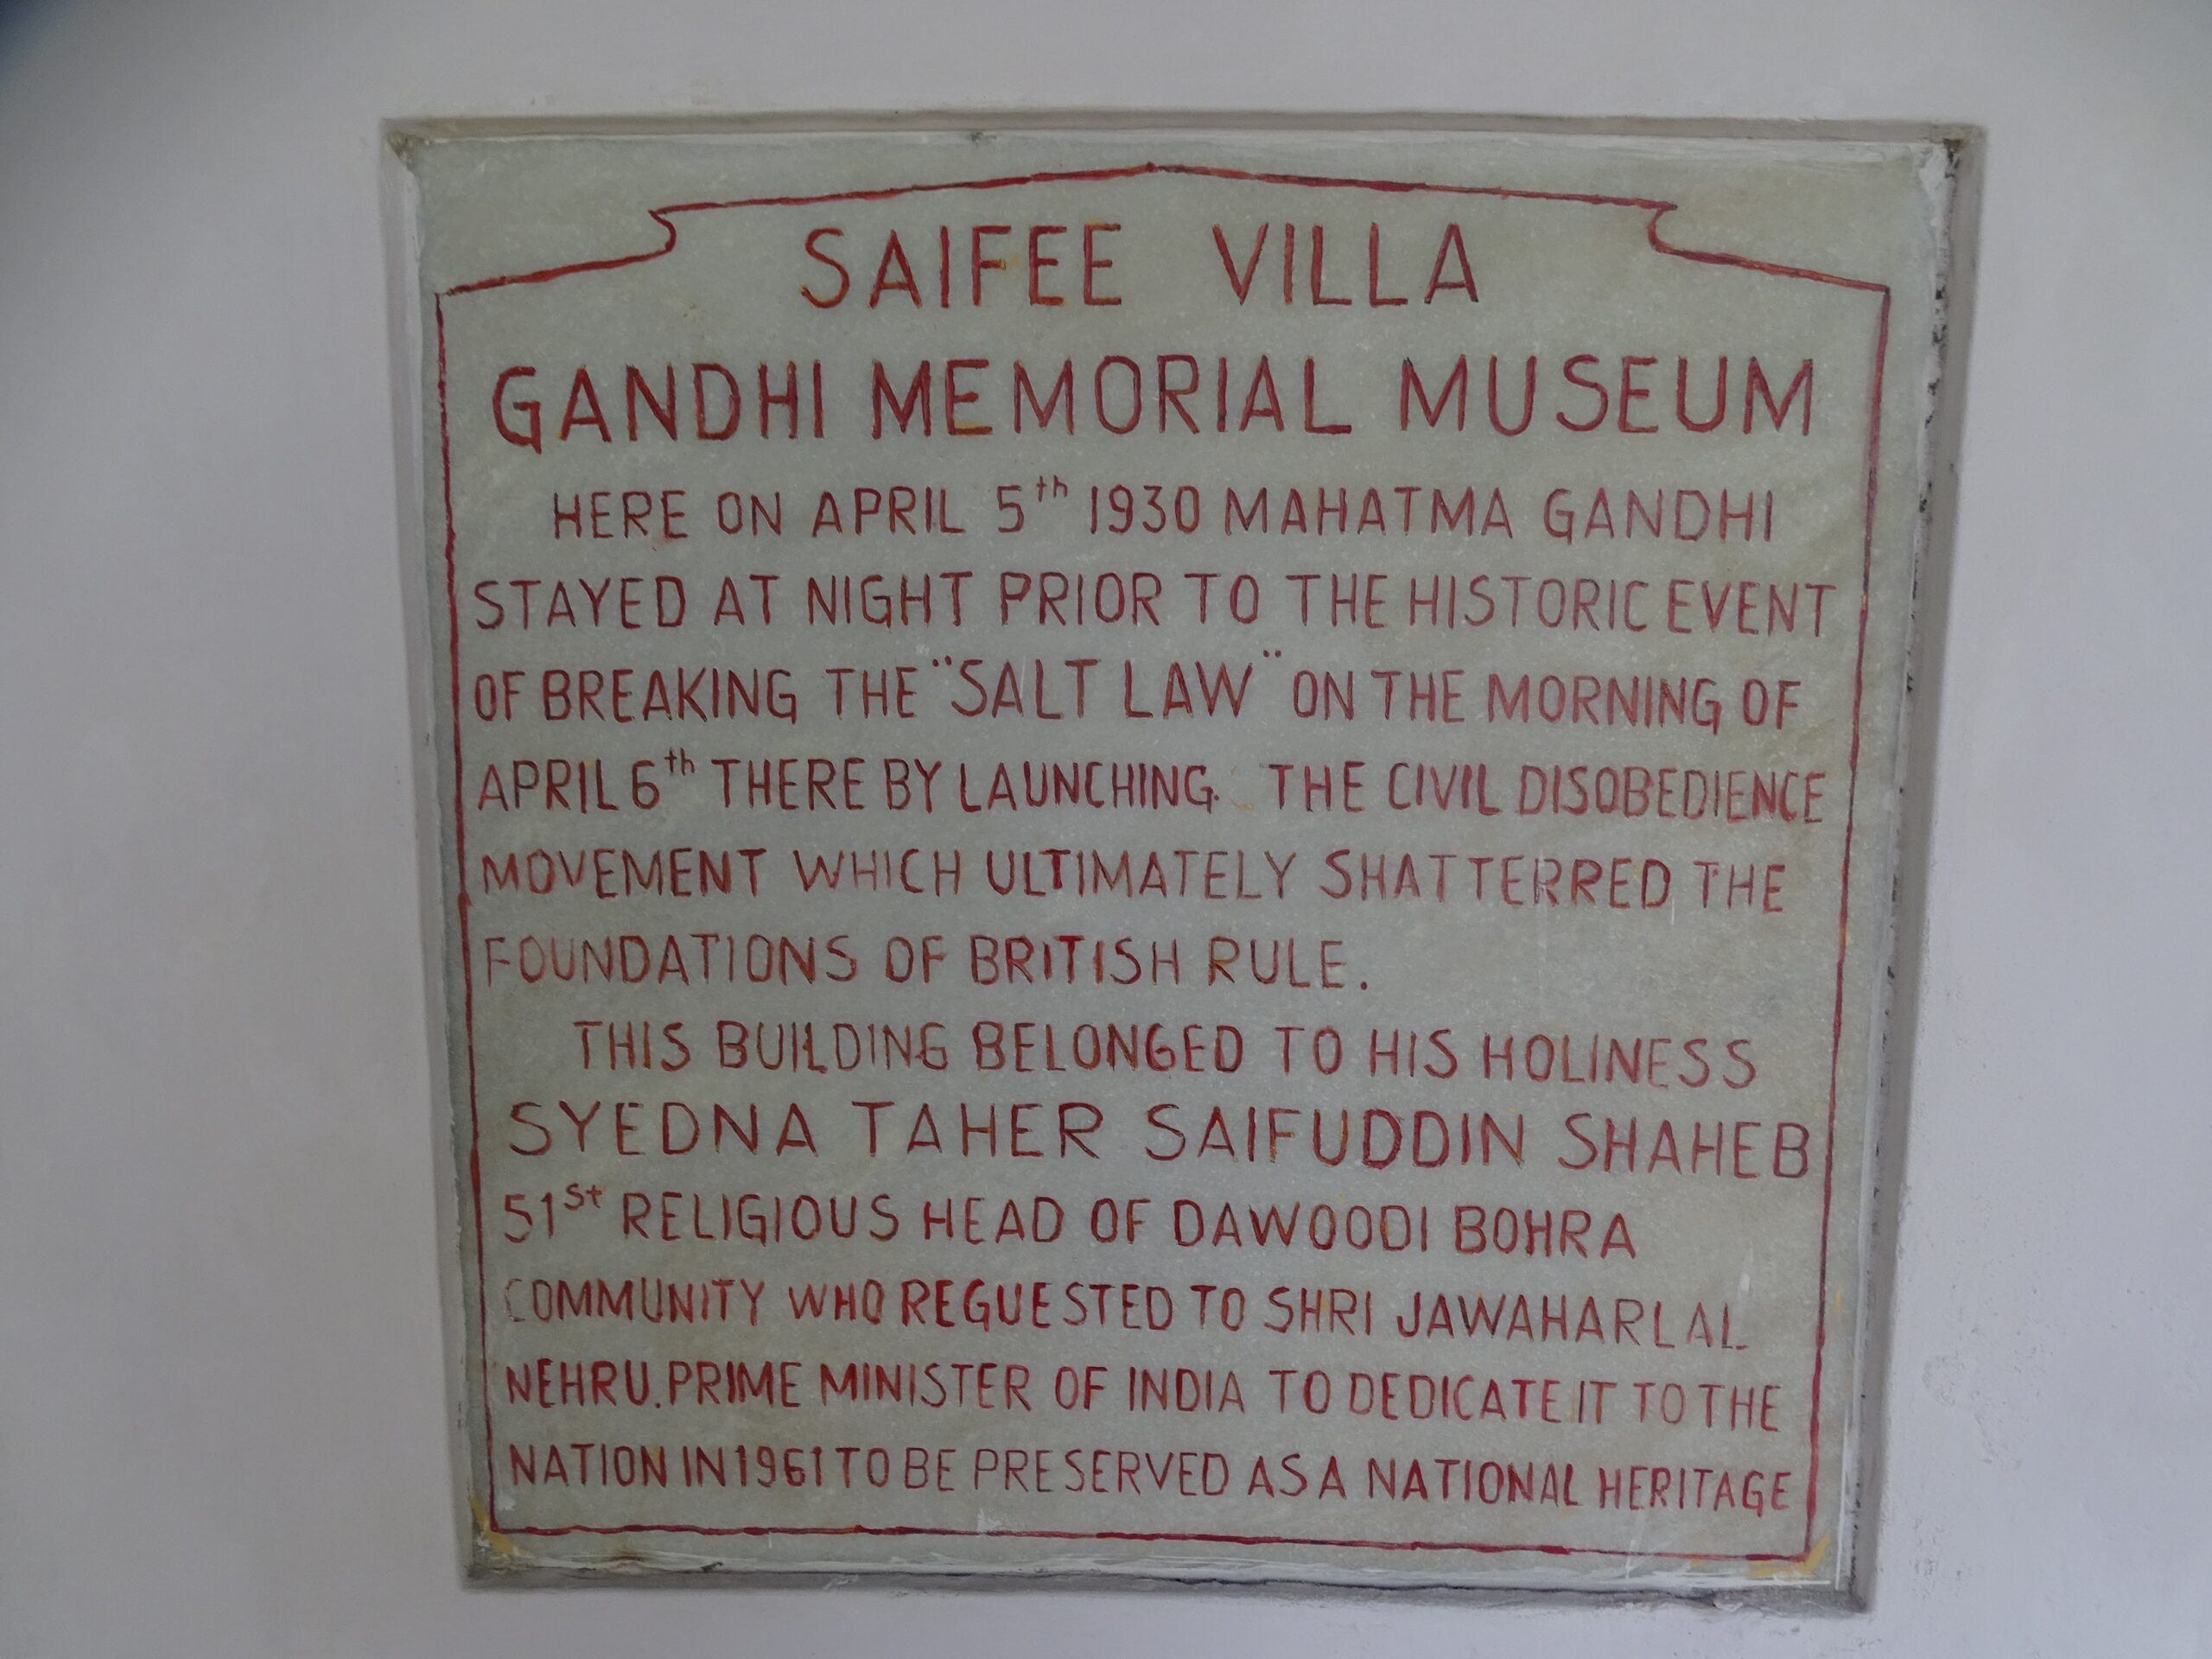 Historical Marker at Saifee Villa - Gandhi Memorial Museum, Dandi, Gujarat, India